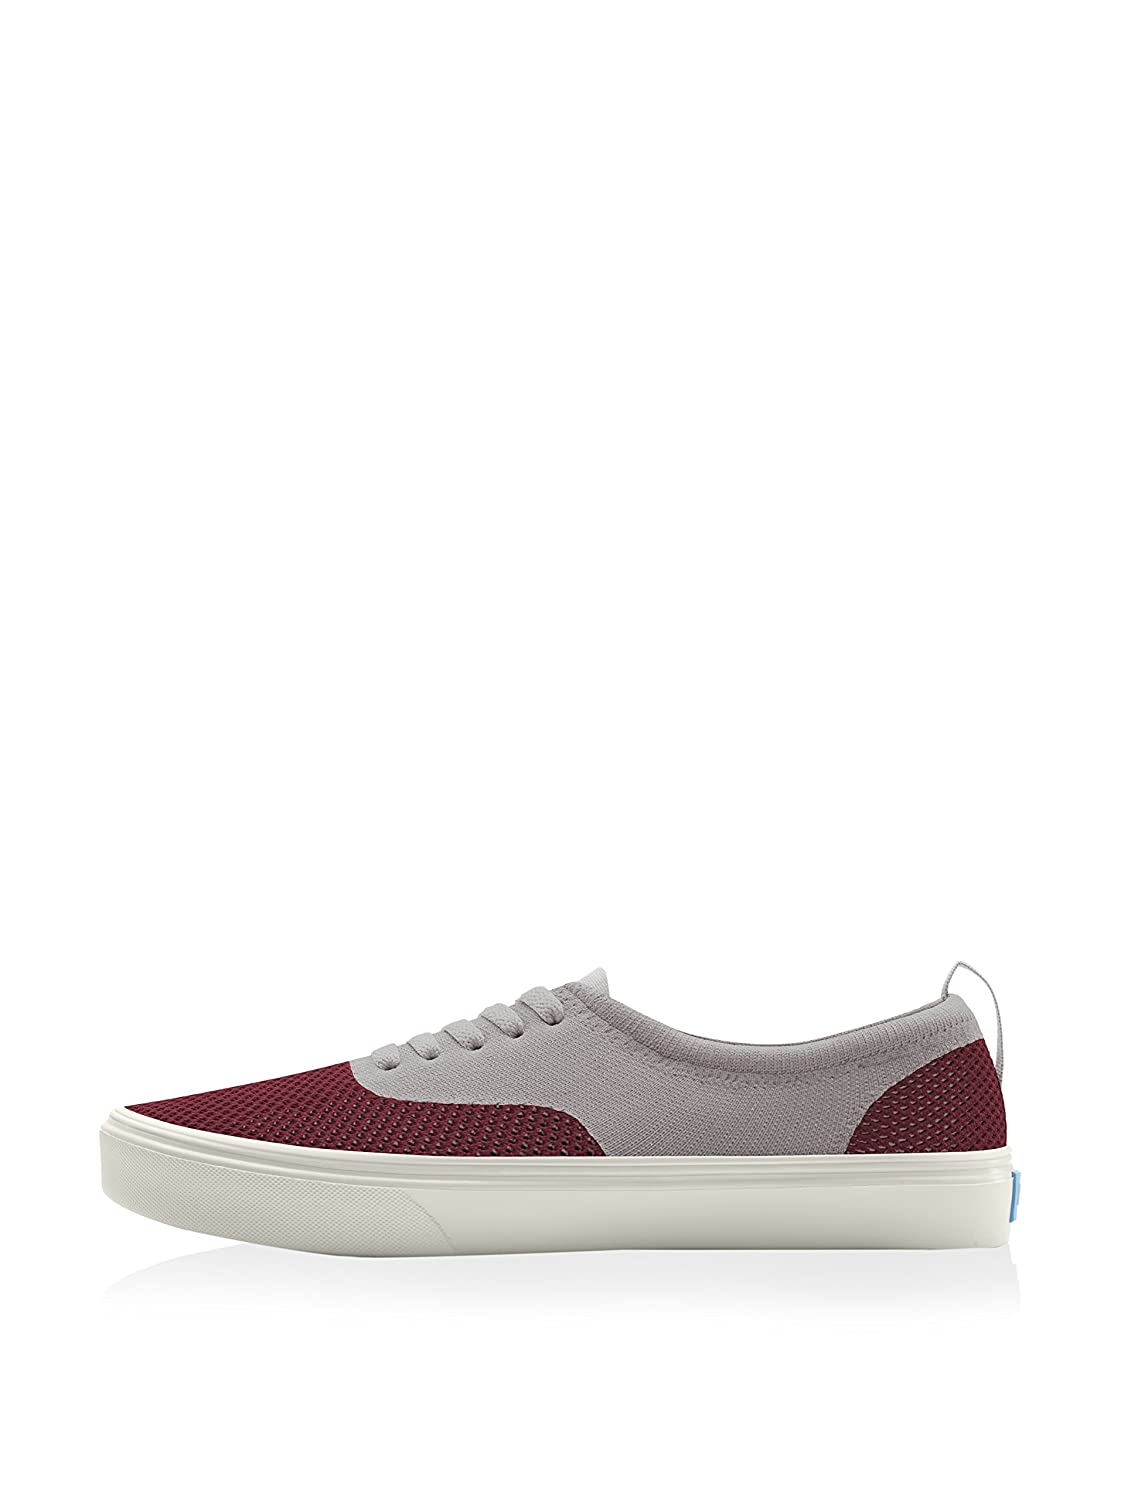 728e38875e0 People Men's The Stanley Knit Sneaker, Highland Red/Thunder Grey/White, 10  M US: Buy Online at Low Prices in India - Amazon.in